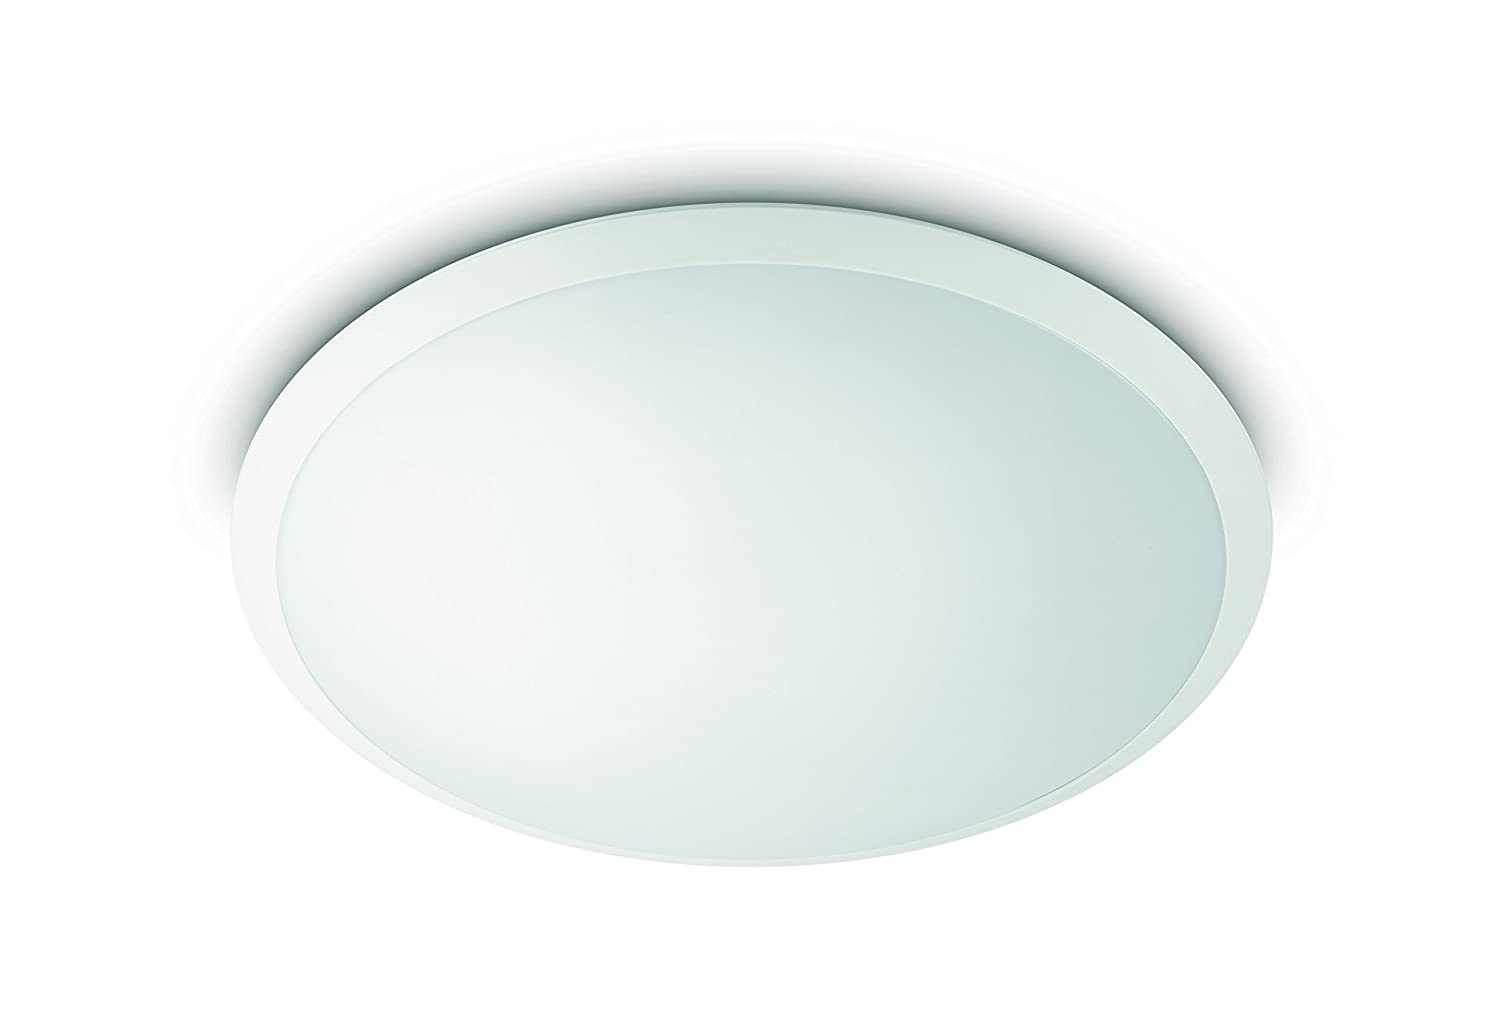 Philips Lighting myLiving Plafón iluminación Interior, Blanco, 36 W